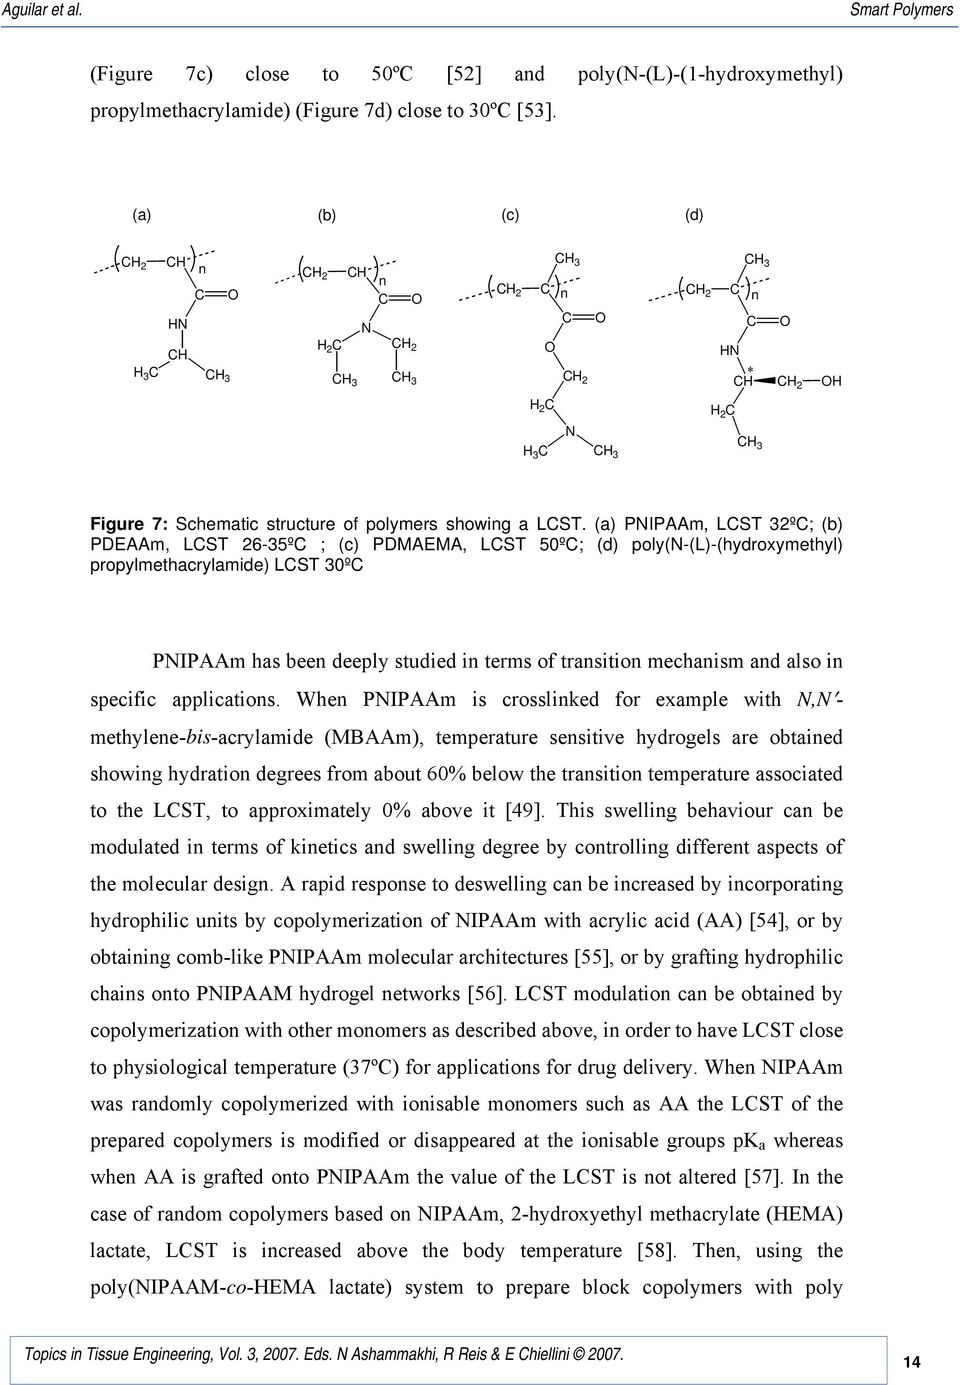 (a) PIPAAm, LST 32º; (b) PDEAAm, LST 26-35º ; (c) PDMAEMA, LST 50º; (d) poly(-(l)-(hydroxymethyl) propylmethacrylamide) LST 30º PIPAAm has been deeply studied in terms of transition mechanism and